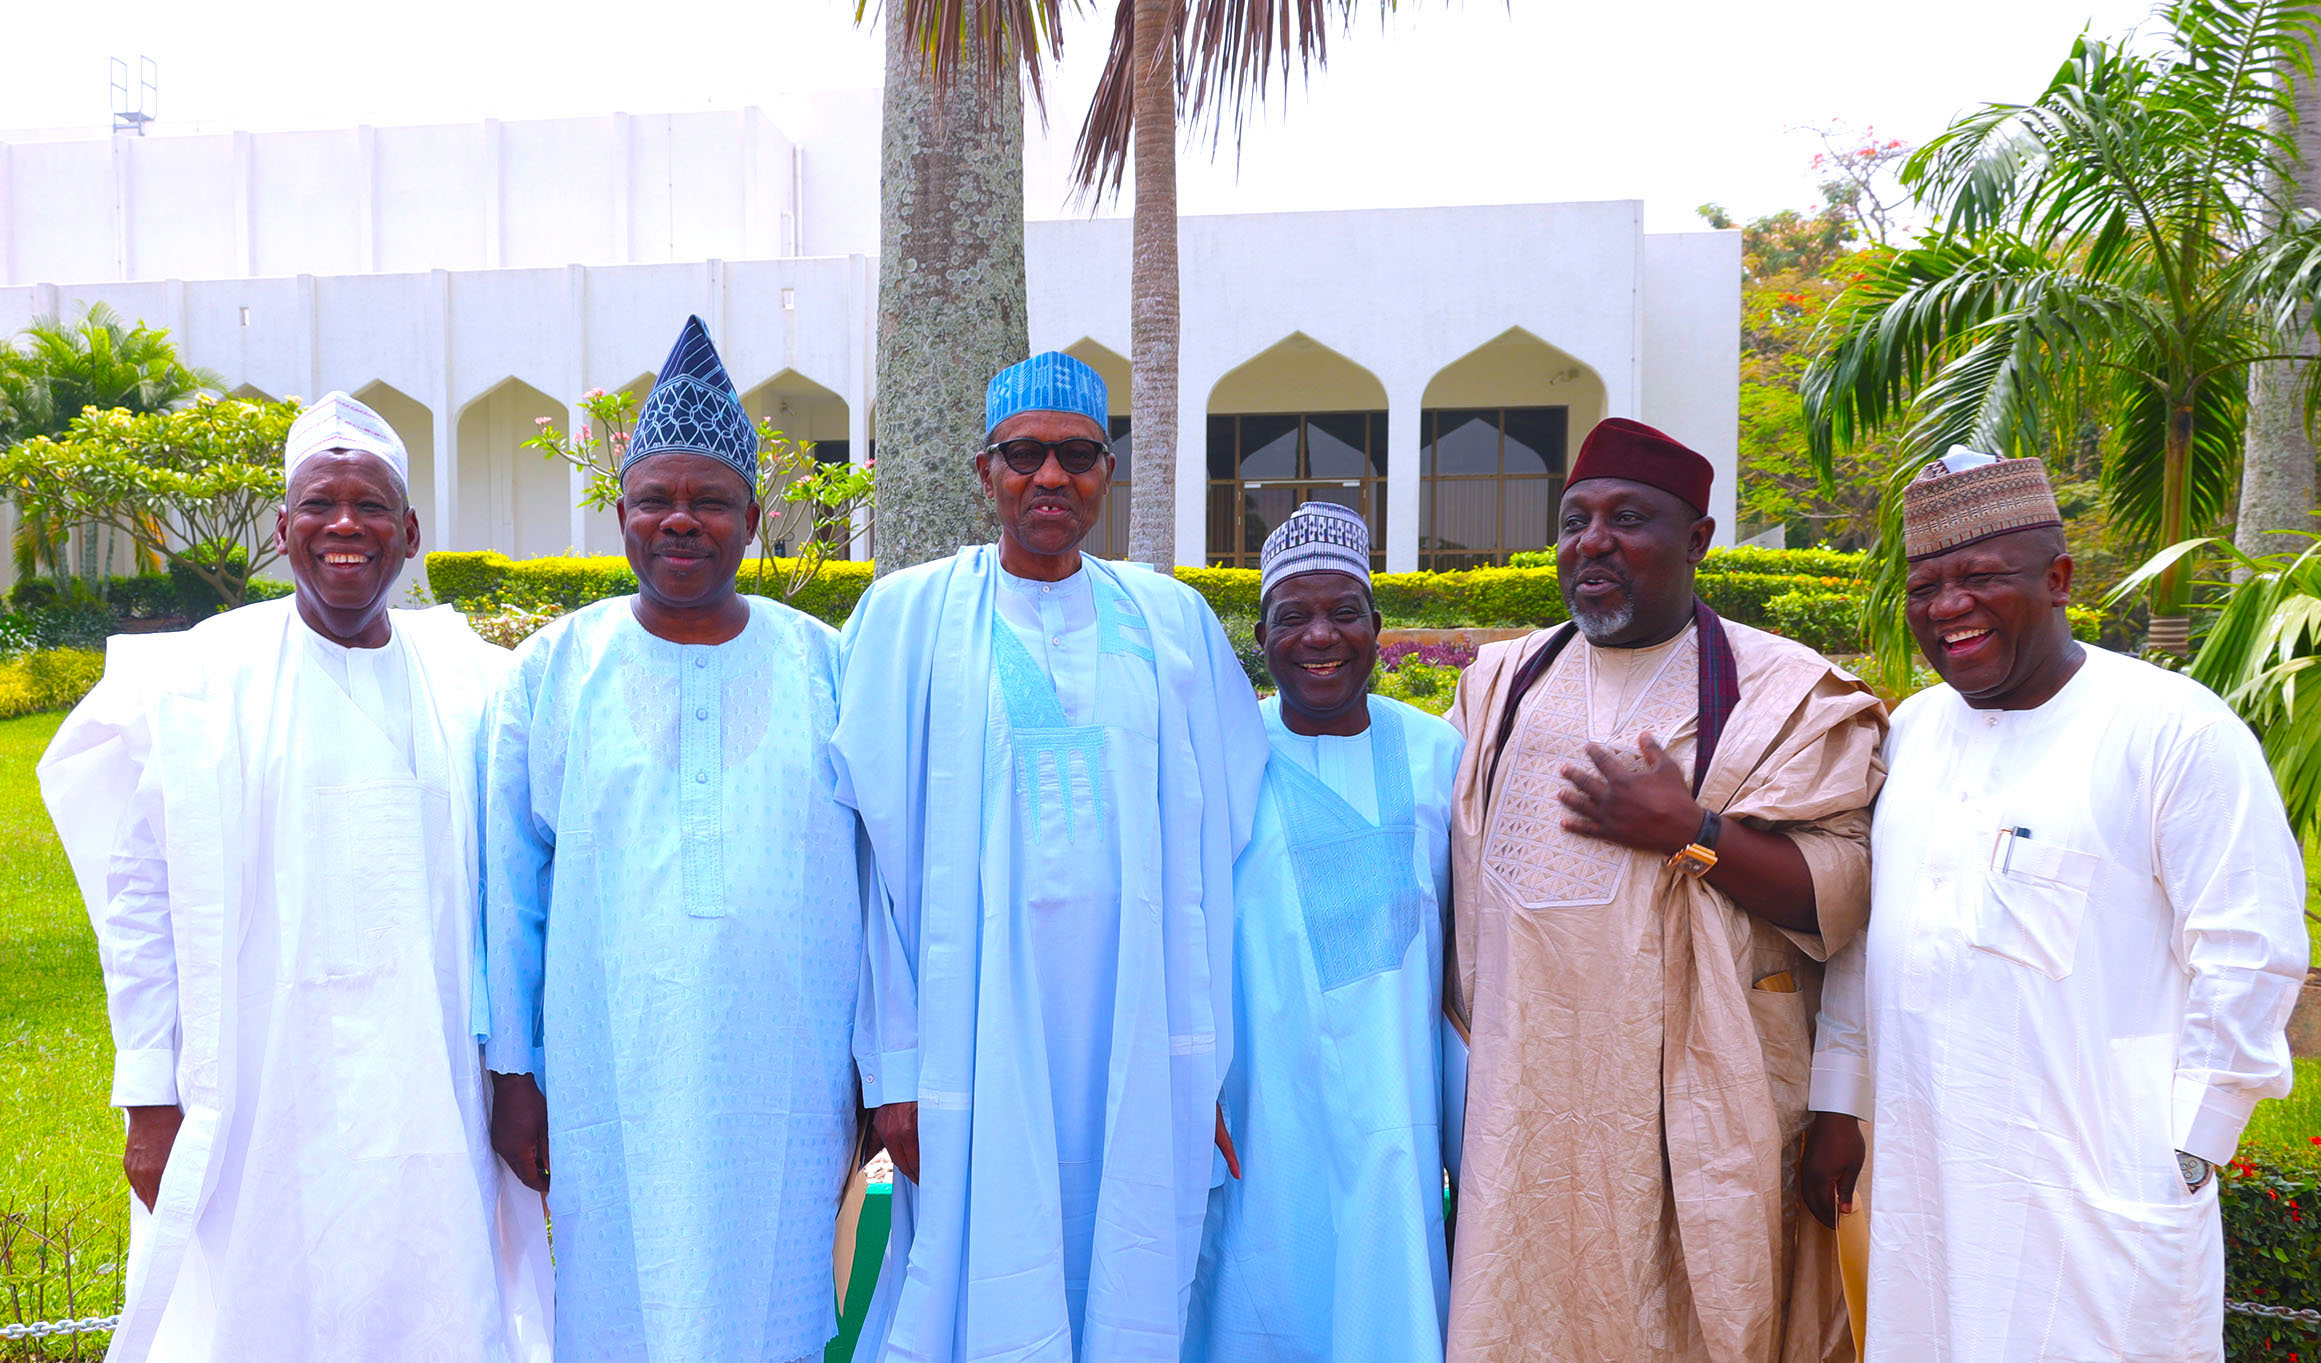 No crisis in APC, says Govs…'We will abide by party constitution and hold ward congresses'